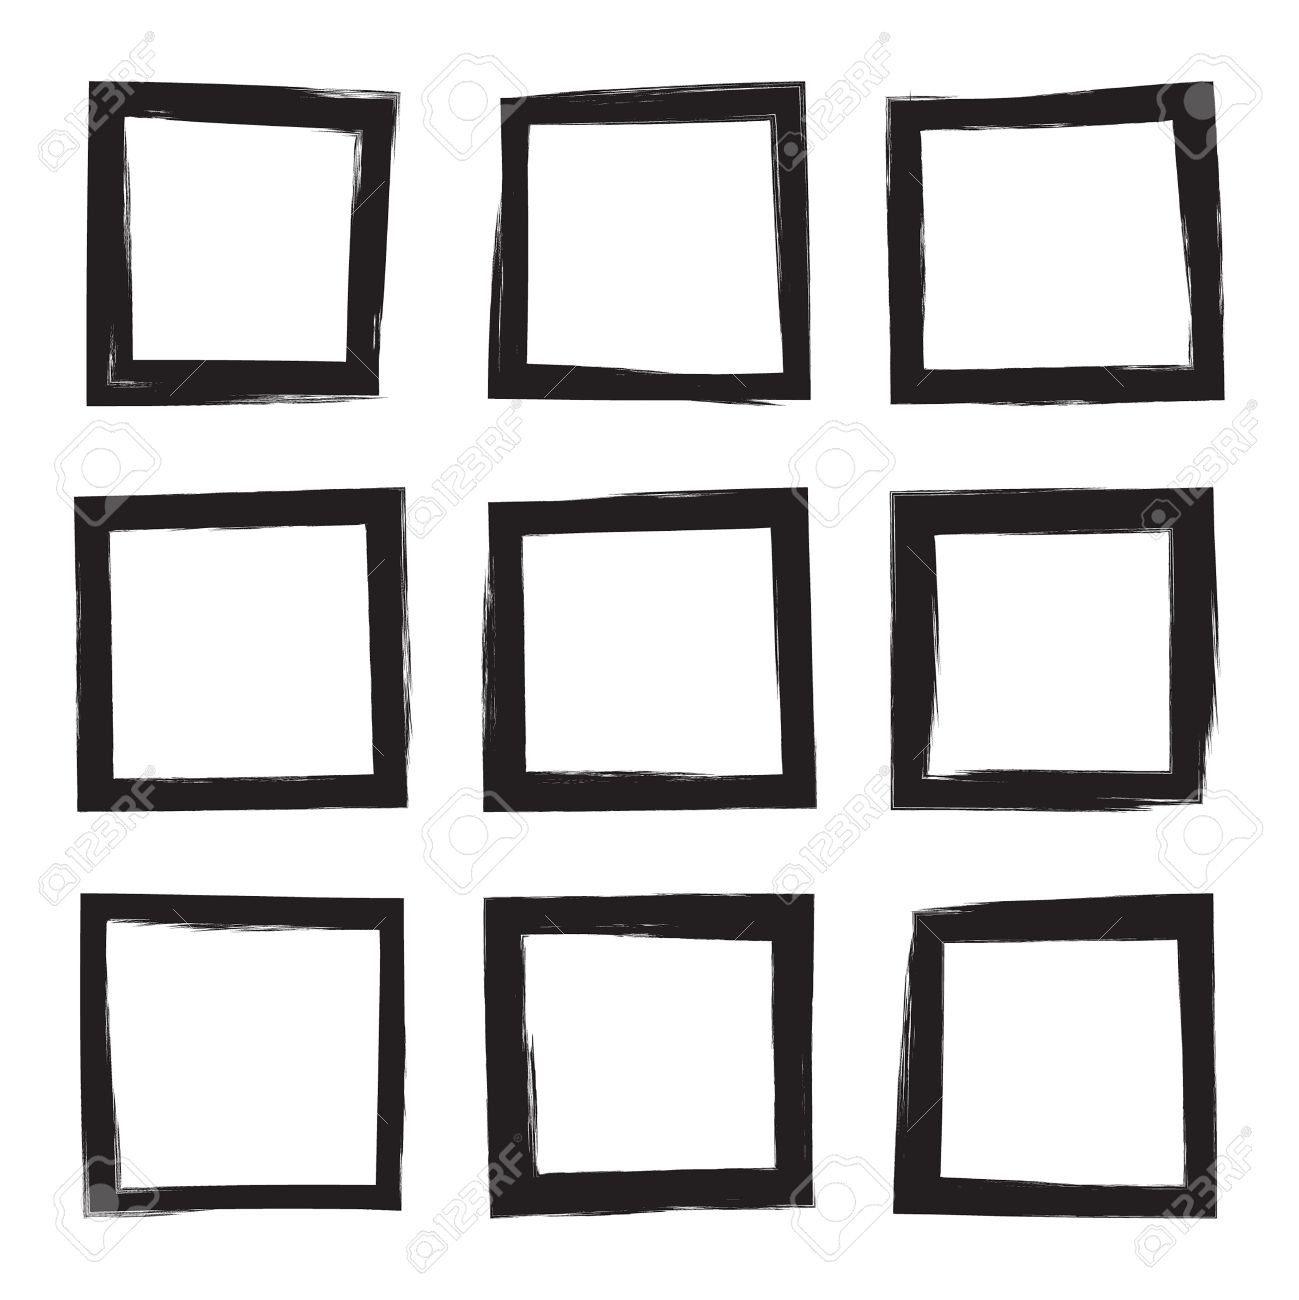 set hand drawn square photo foto frame text box from black